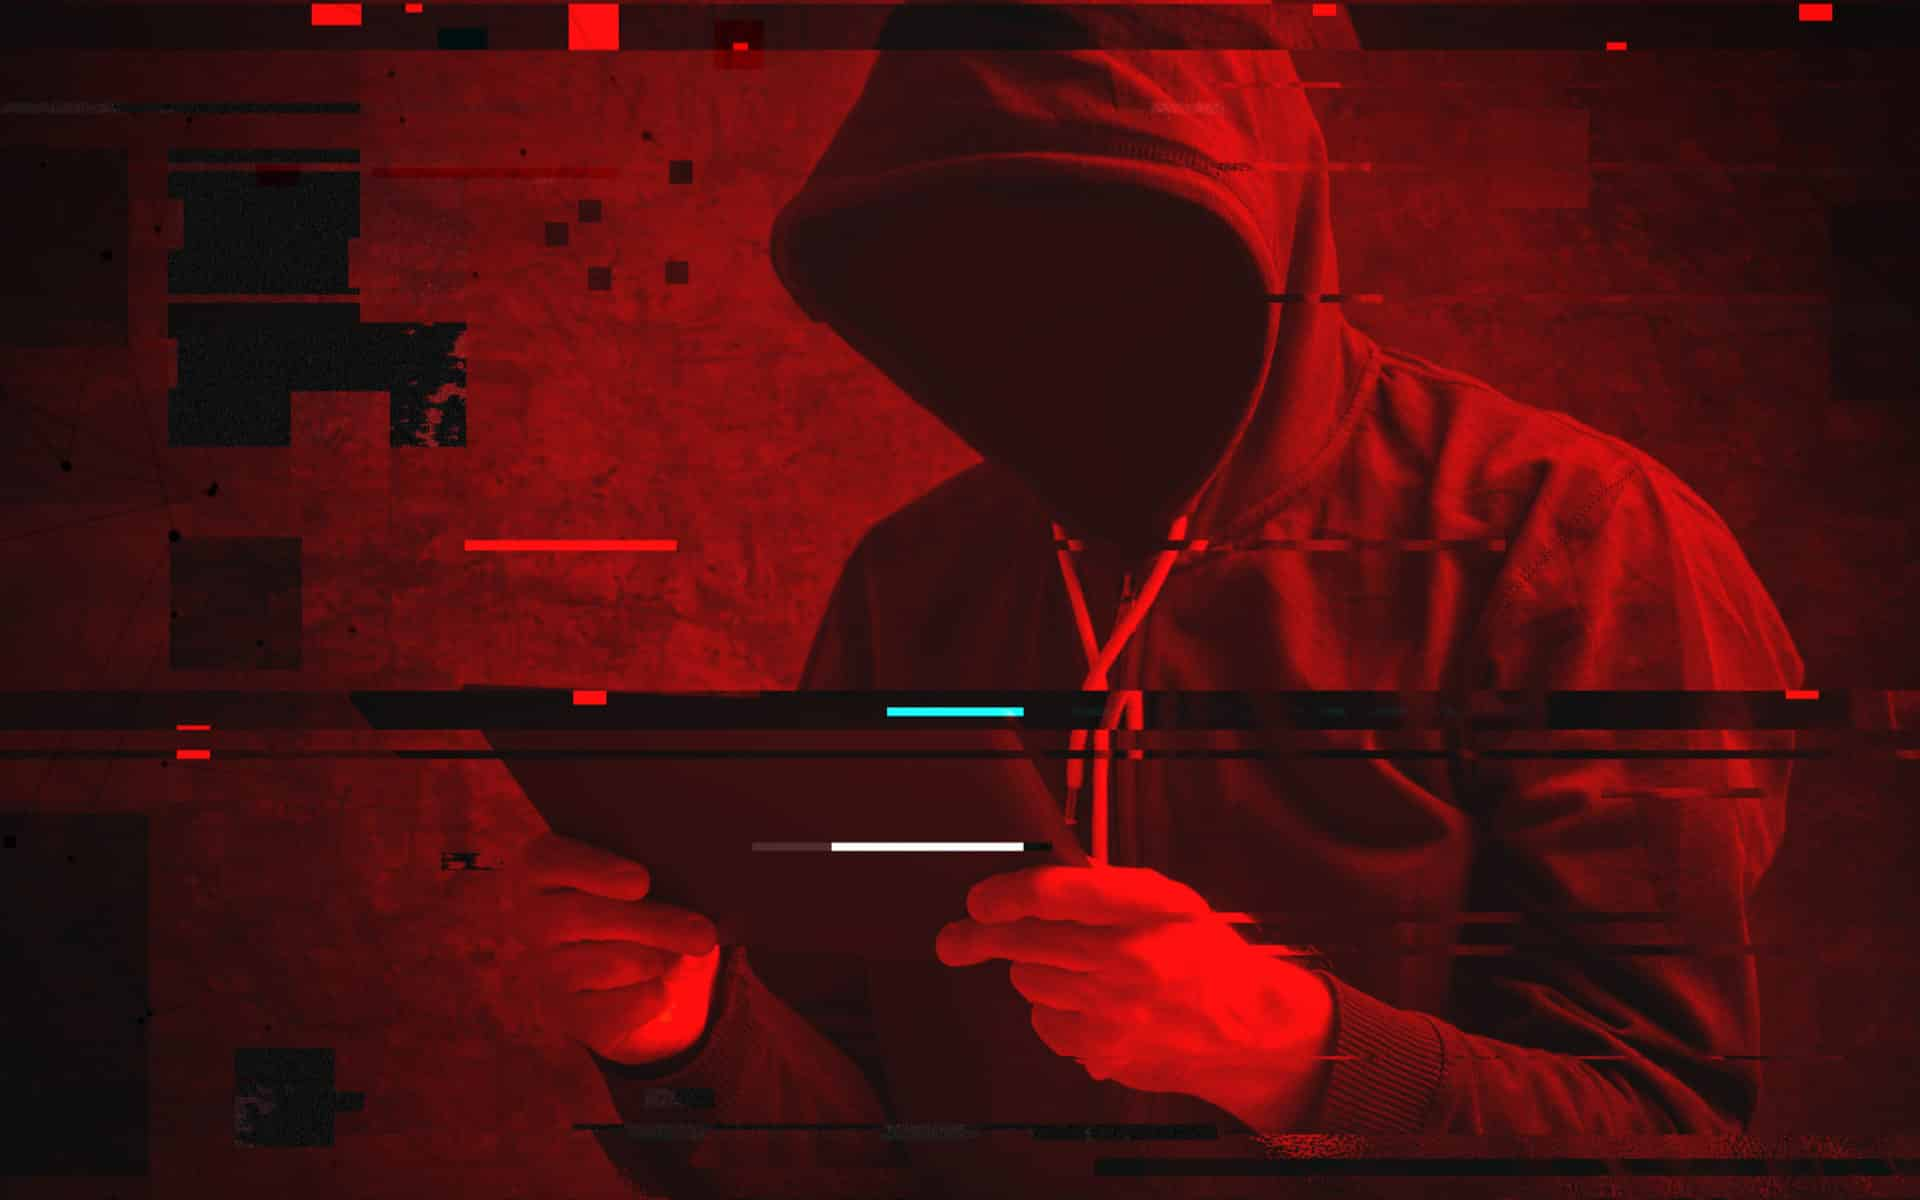 Bitcoin Ransom Demanded from Users of Ring Cameras